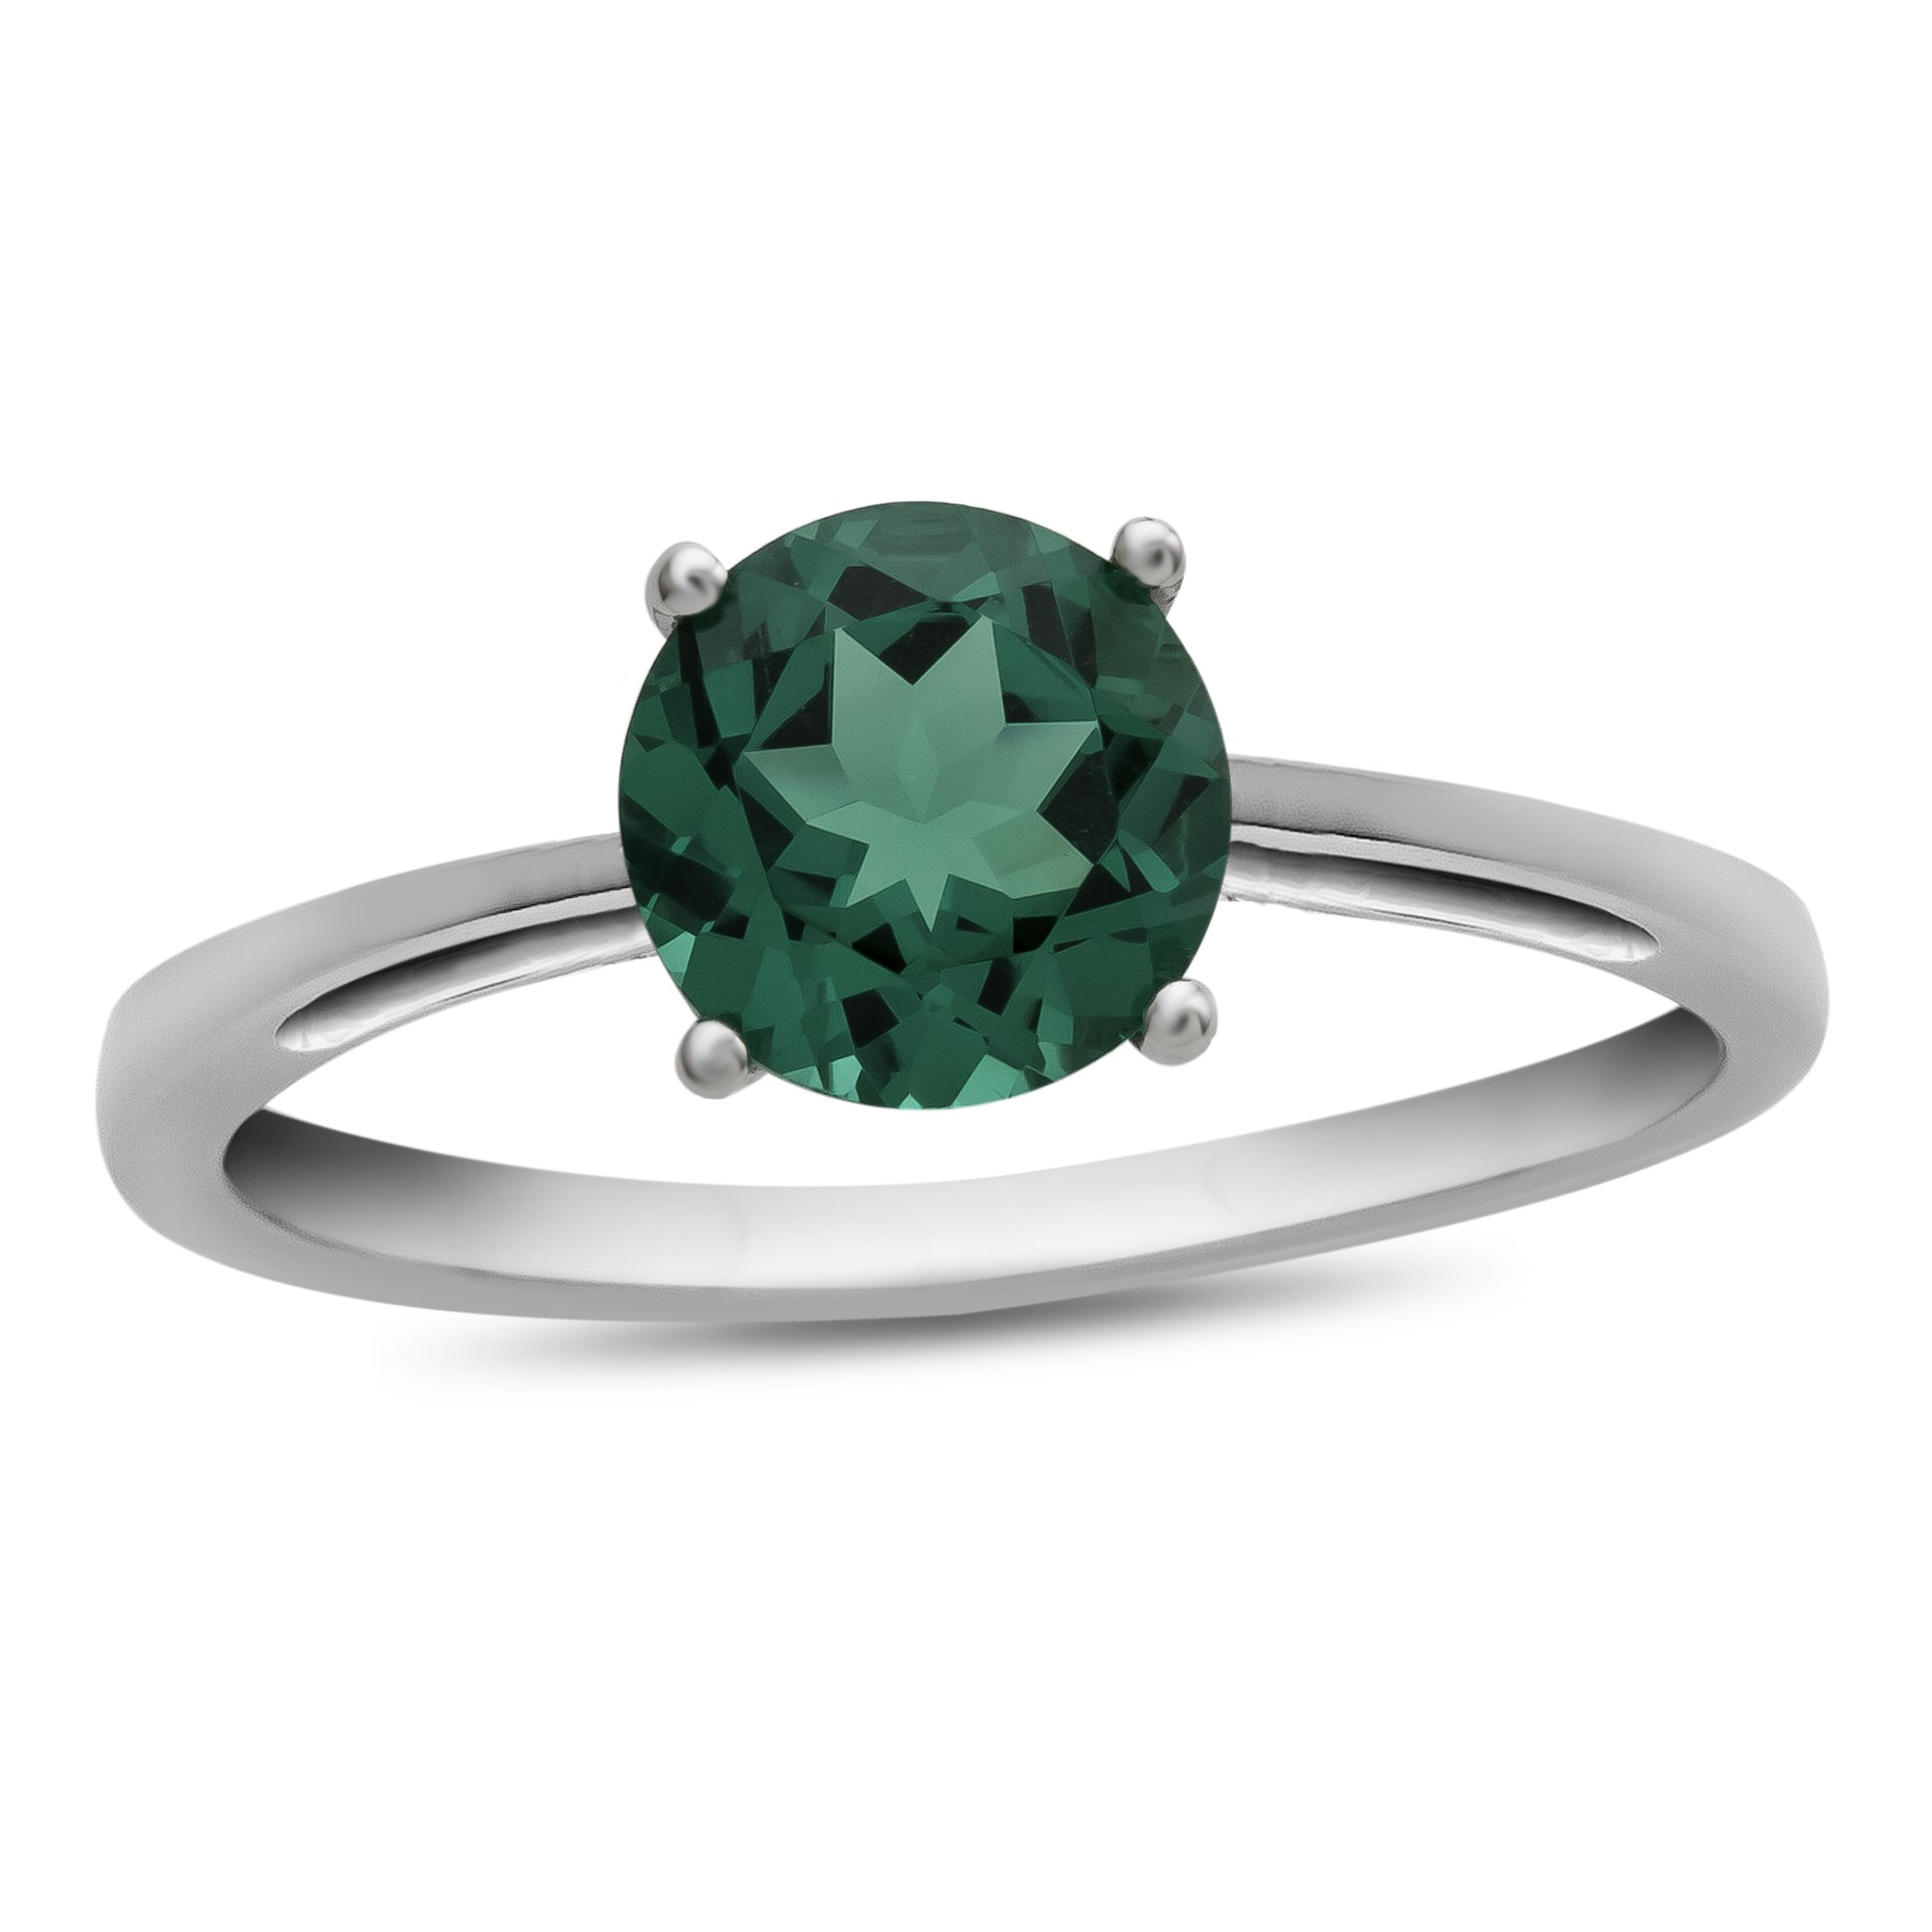 10k White Gold 7mm Round Simulated Emerald Ring Size 6